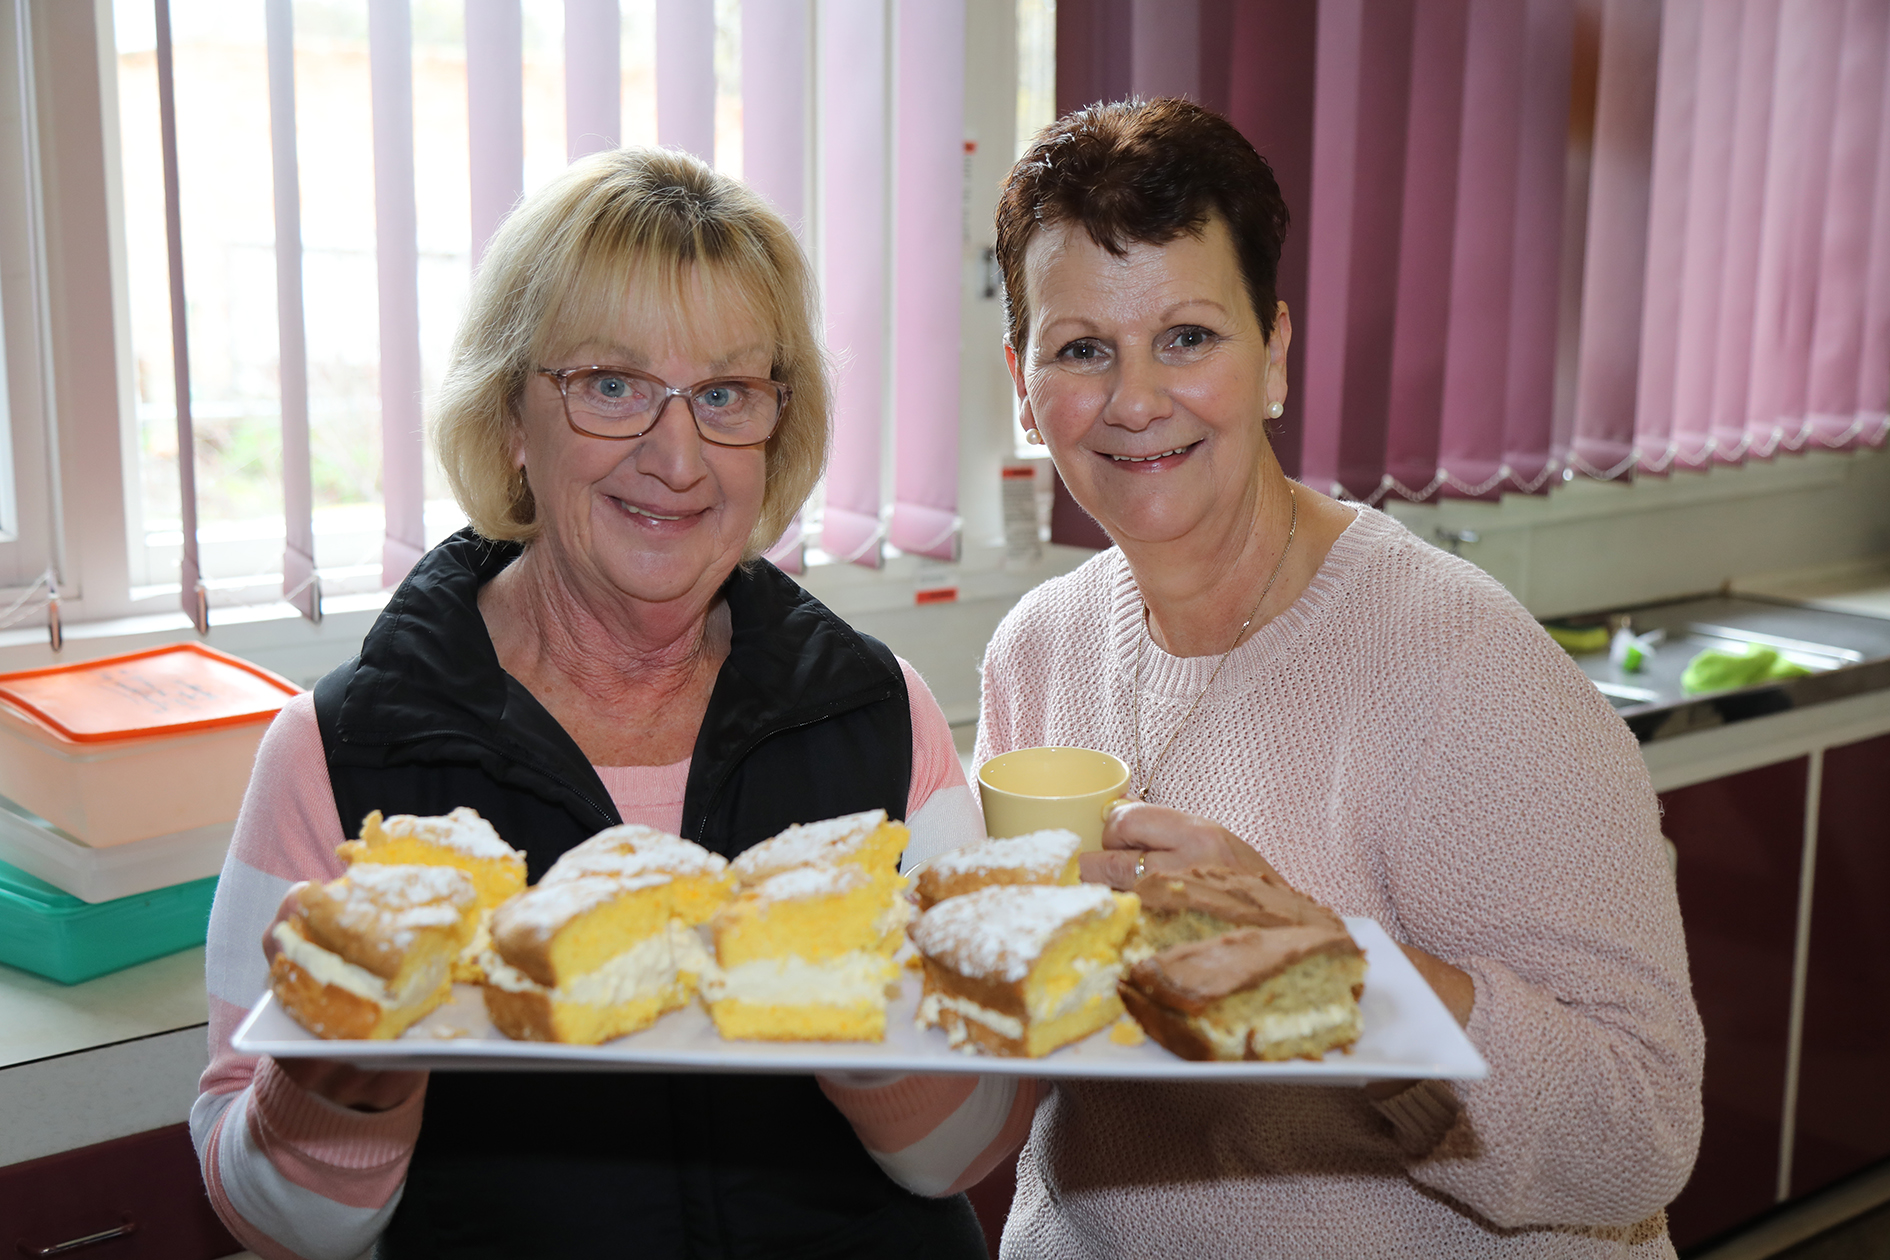 Christine Donohue (left) and Sally Donohue (right) having their cake and eating it at the Biggest Morning Tea!